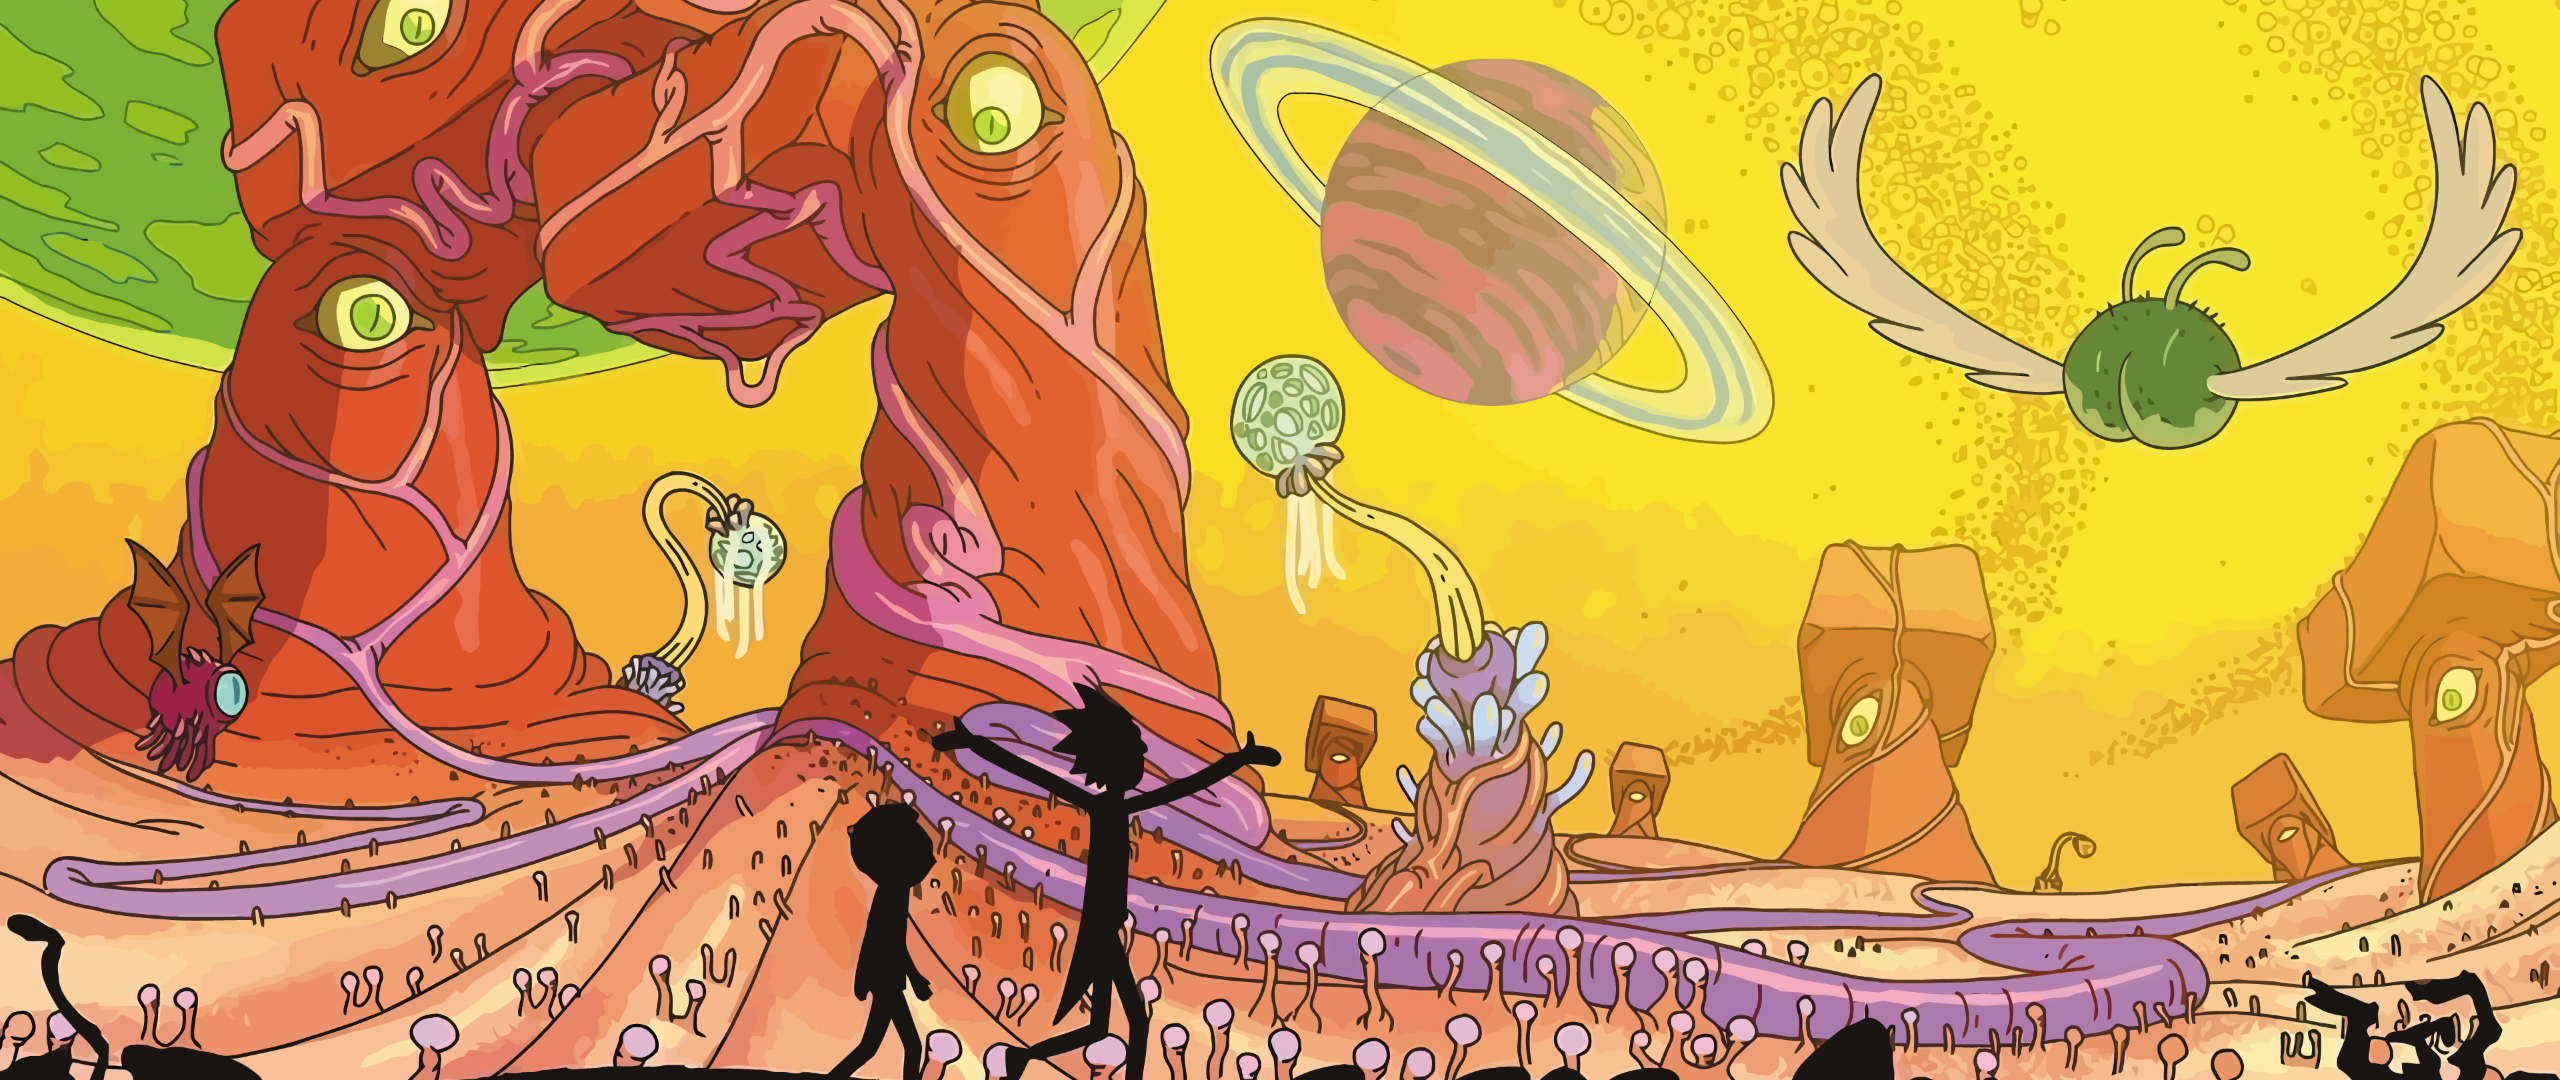 Download Rick And Morty 1280x720 Resolution, HD 4K Wallpaper